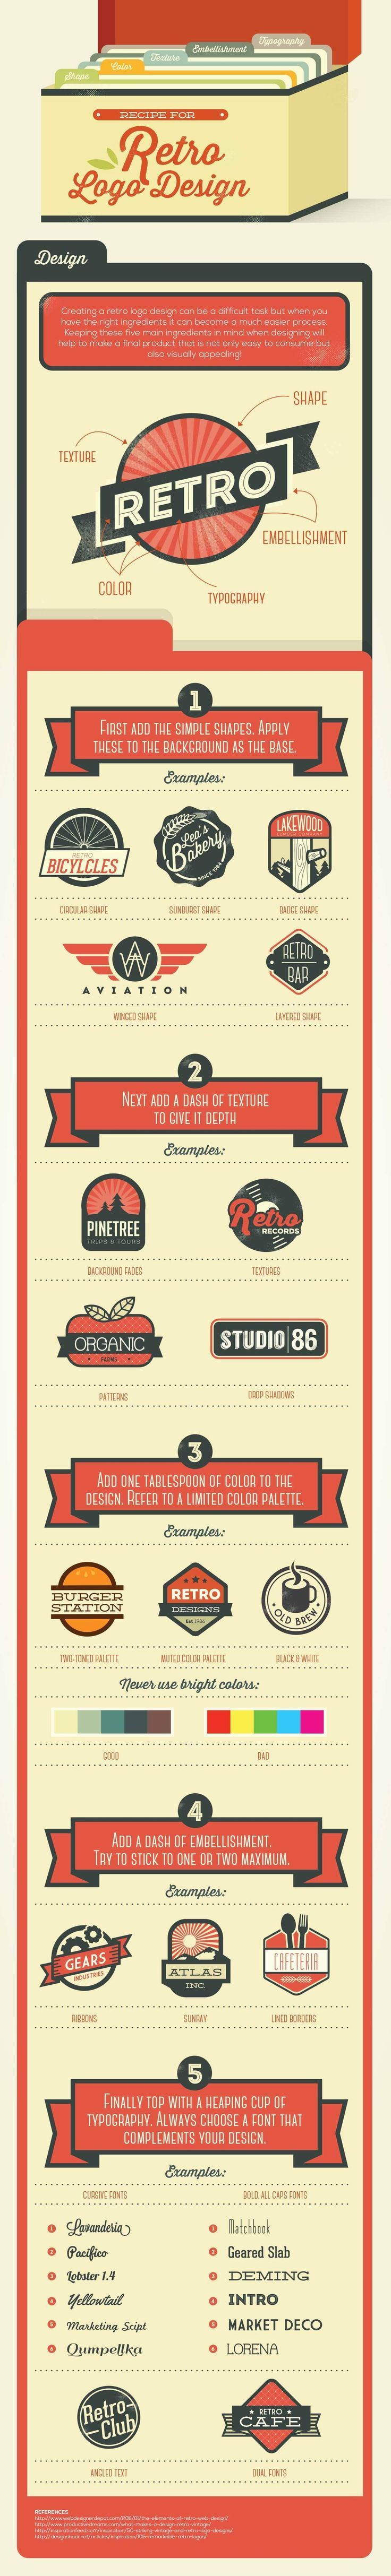 Recipe for retro logo design. (More design inspiration at www.aldenchong.com) (scheduled via http://www.tailwindapp.com?utm_source=pinterest&utm_medium=twpin&utm_content=post6772838&utm_campaign=scheduler_attribution)